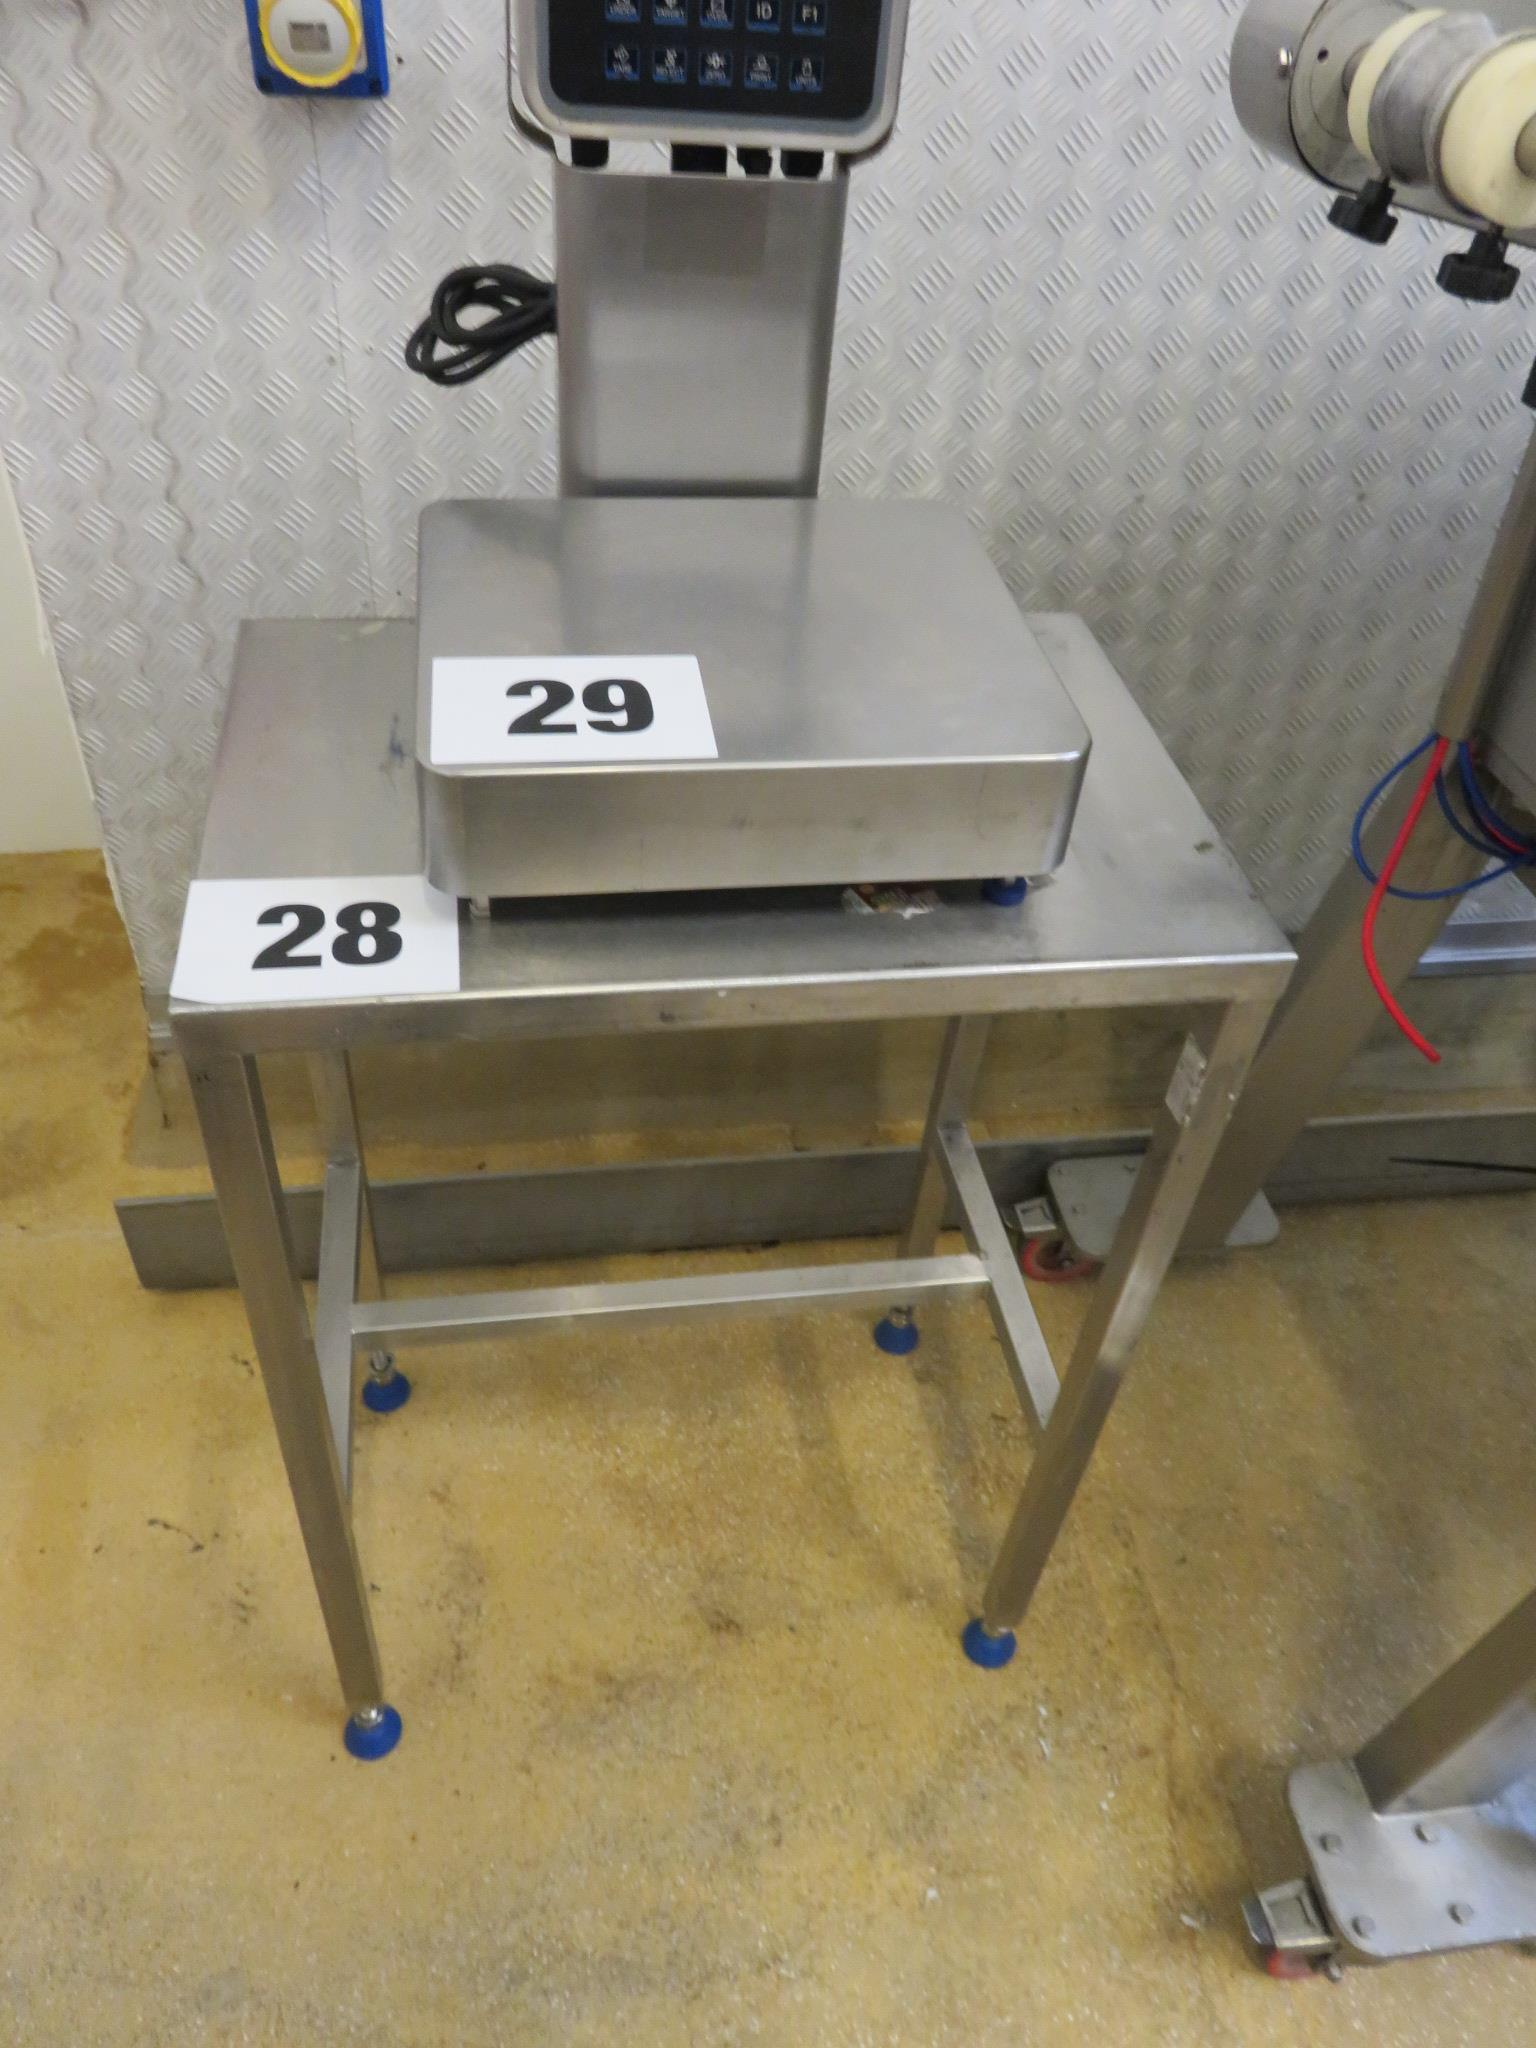 Lot 28 - S/s Table 600 x 400 mm. Lift out £10